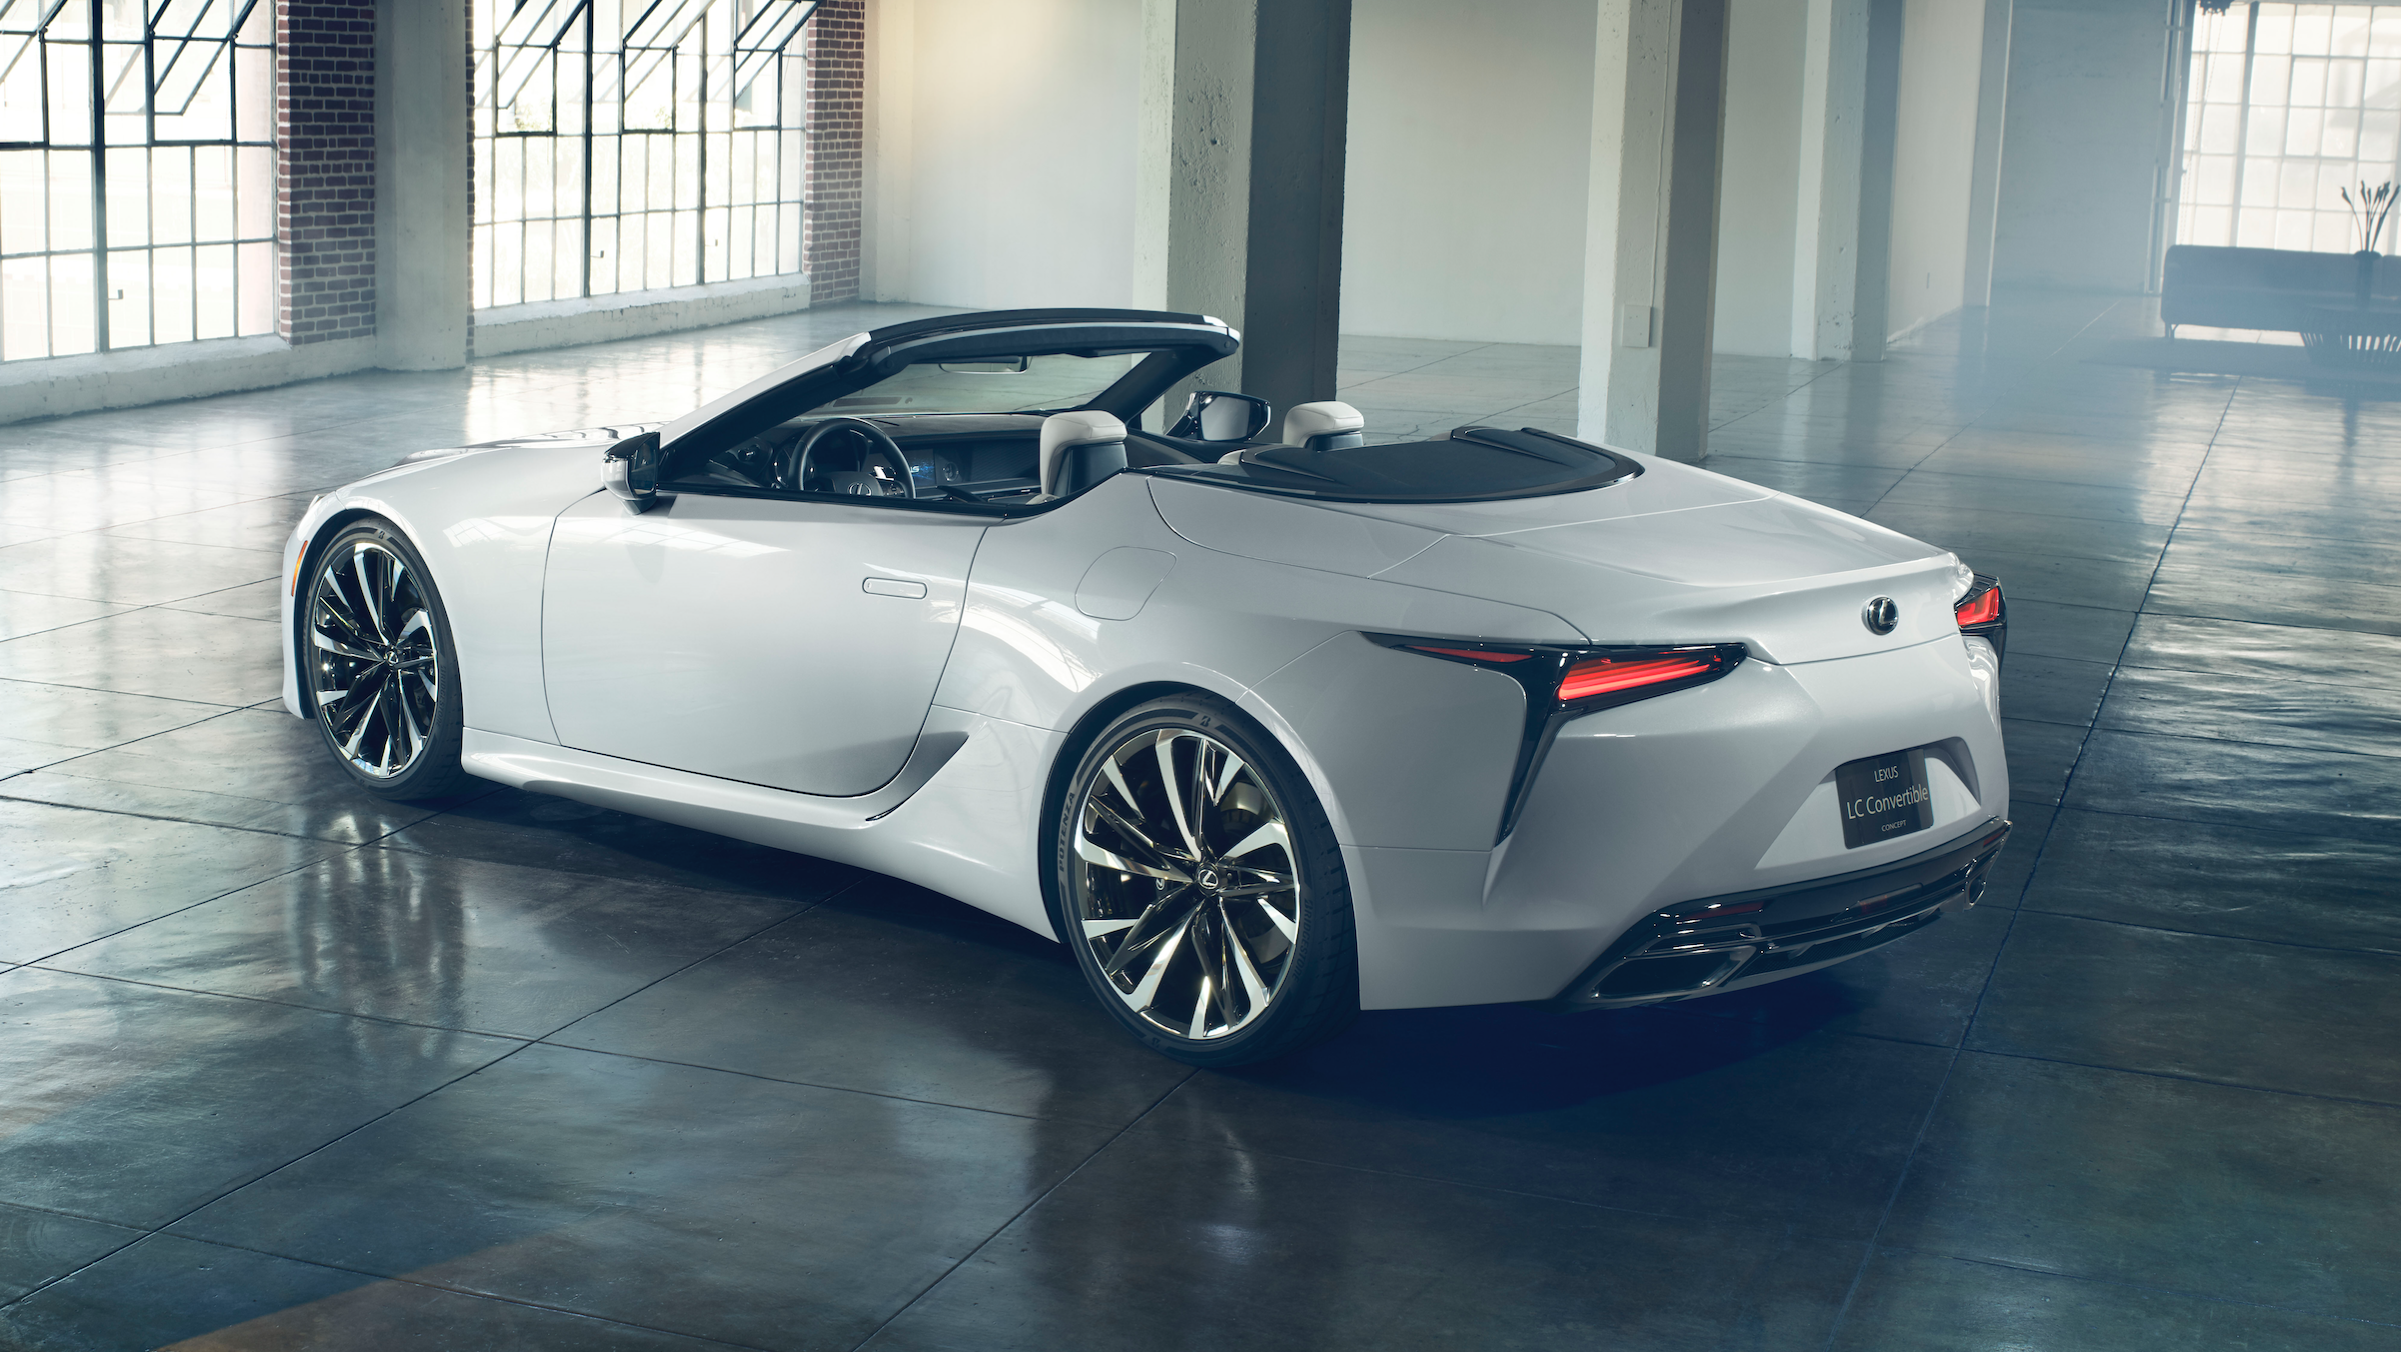 50 New Lc Lexus 2019 Overview with Lc Lexus 2019